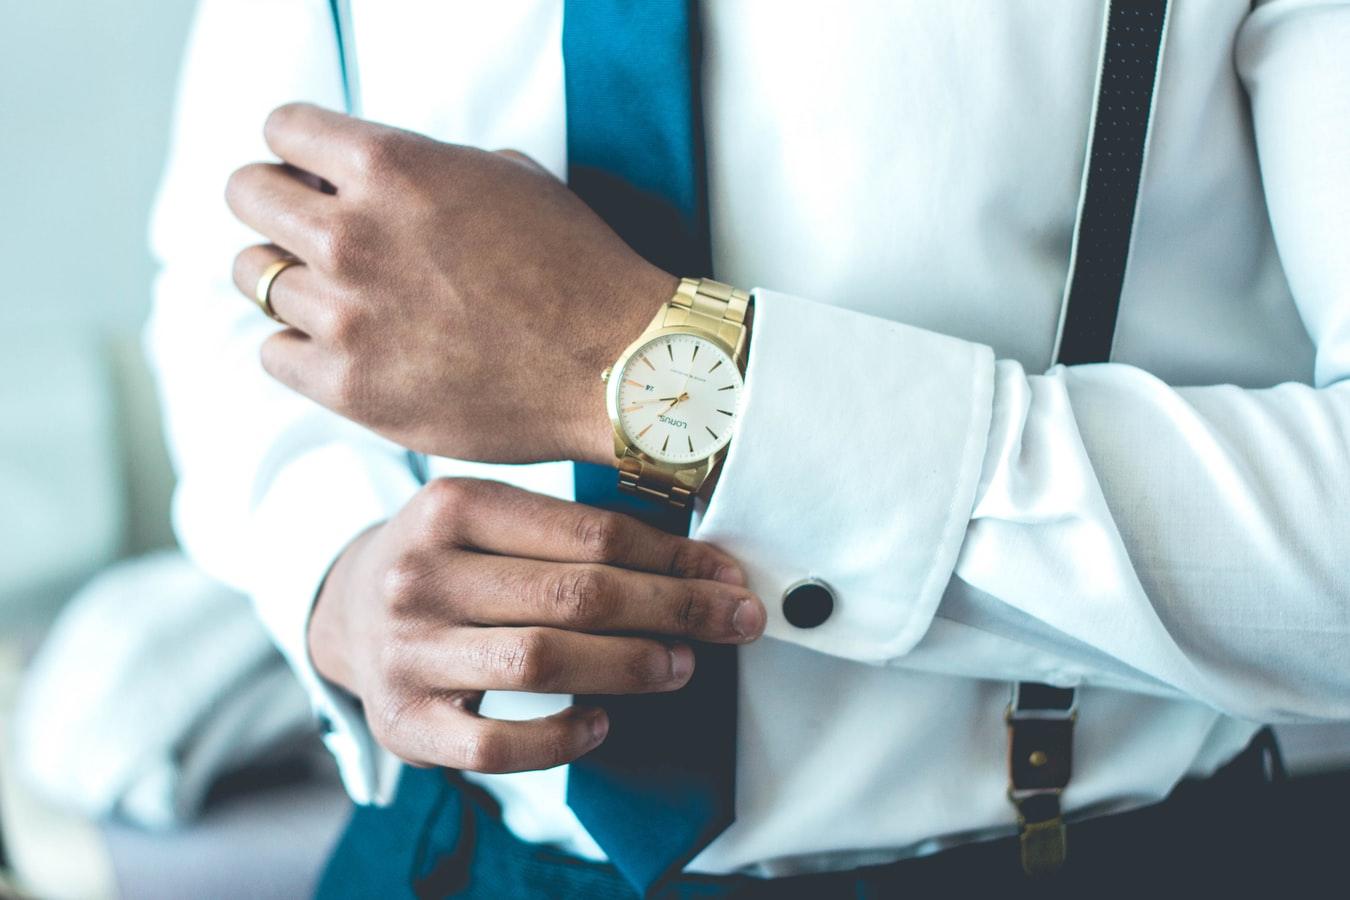 man wearing pressed shirt and watch